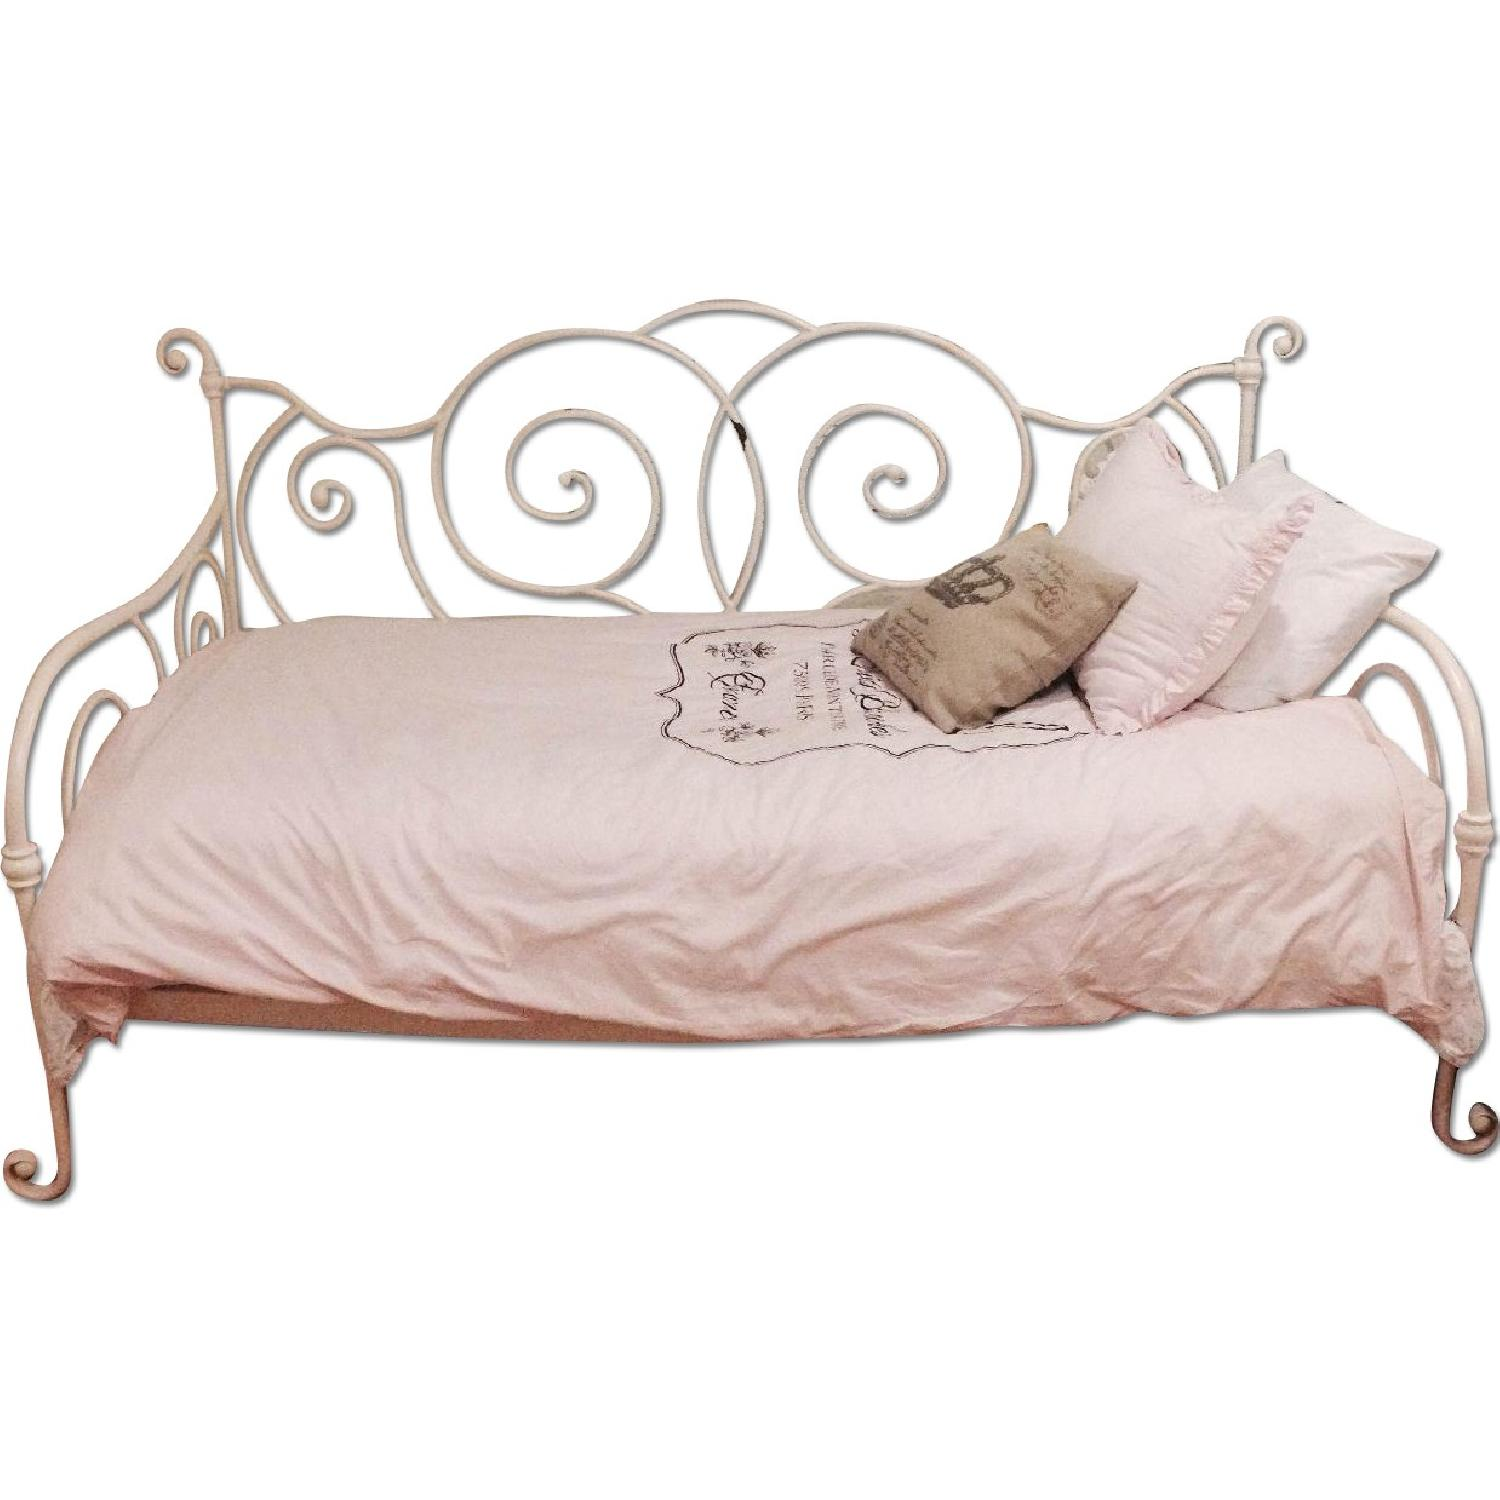 Bombay & Company Kids Daybed - image-0